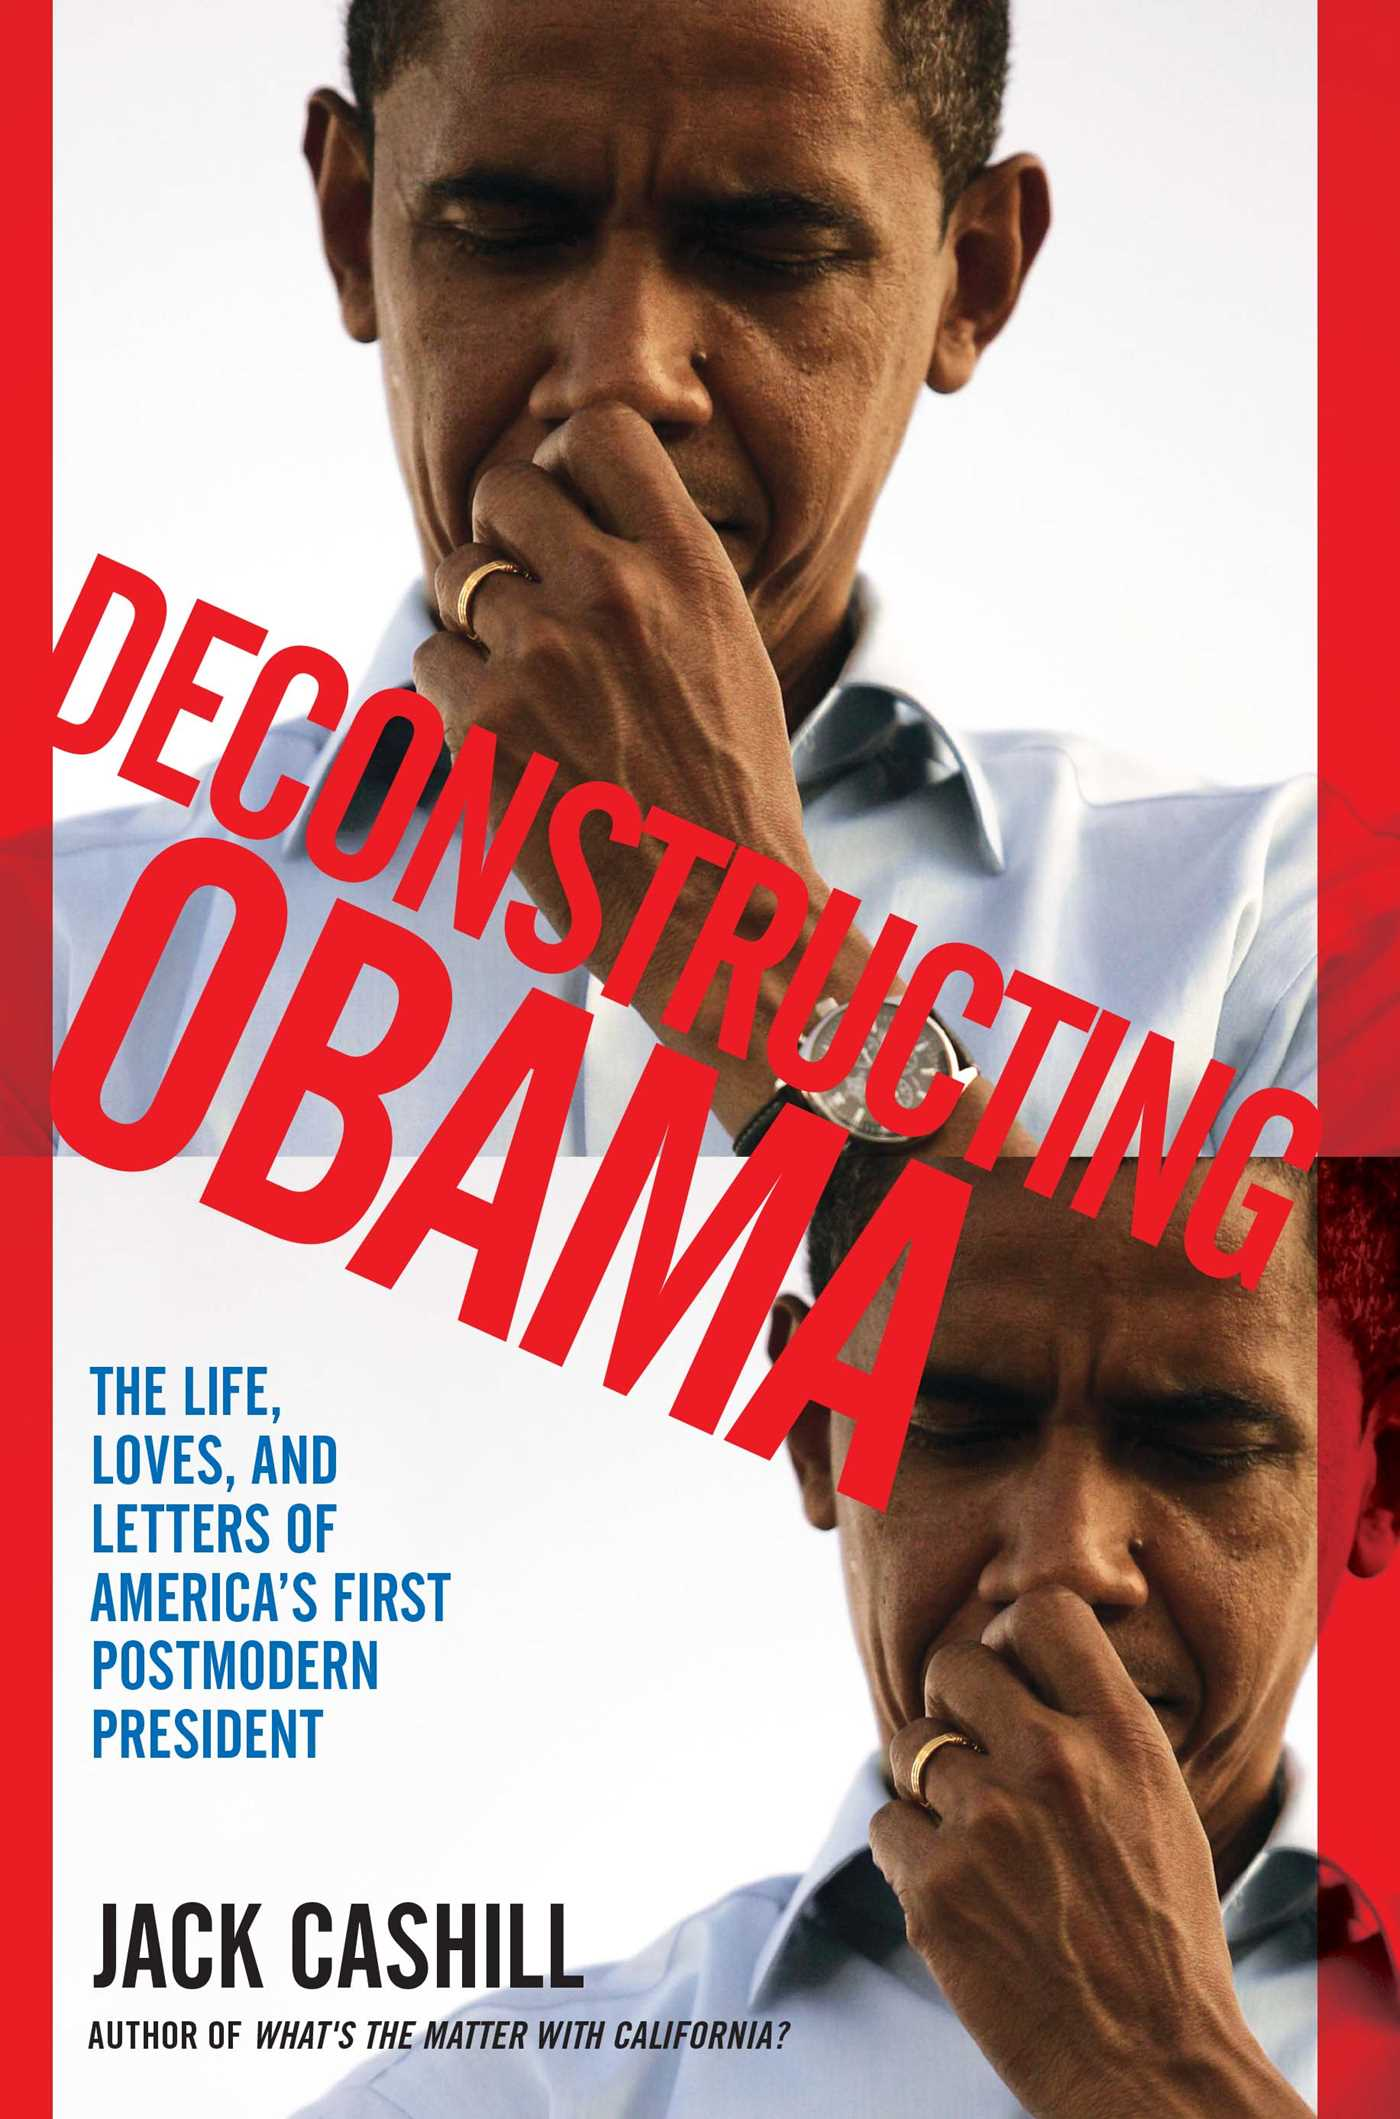 Deconstructing-obama-9781451611120_hr